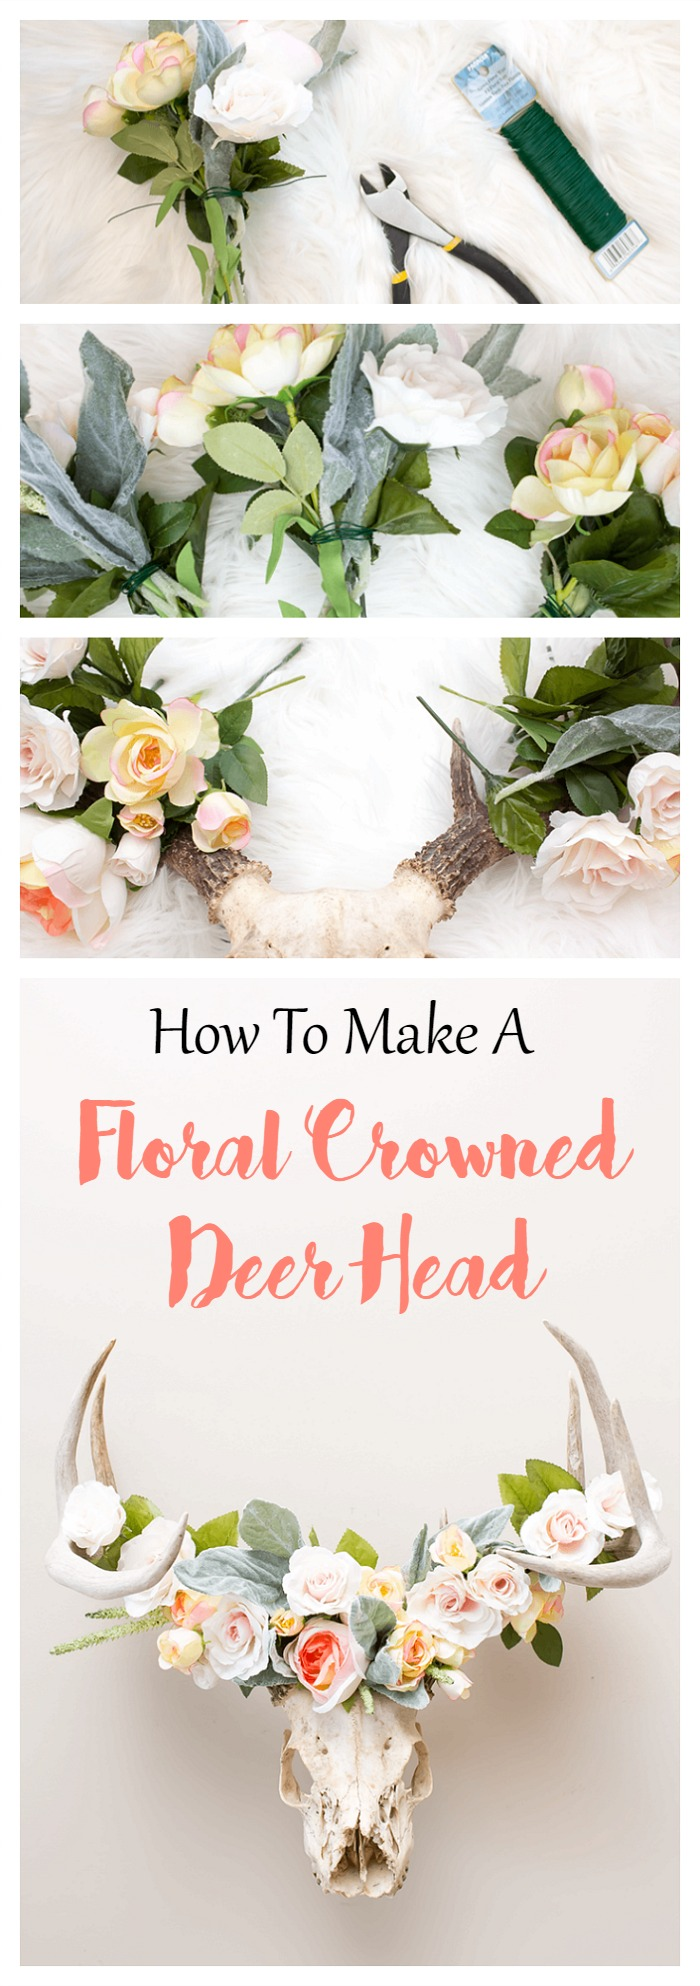 This DIY floral crowned deer head takes just 10 minutes to create. Apply the same method to antlers, gnarly driftwood, decorative branches and any other natural woodland decor.